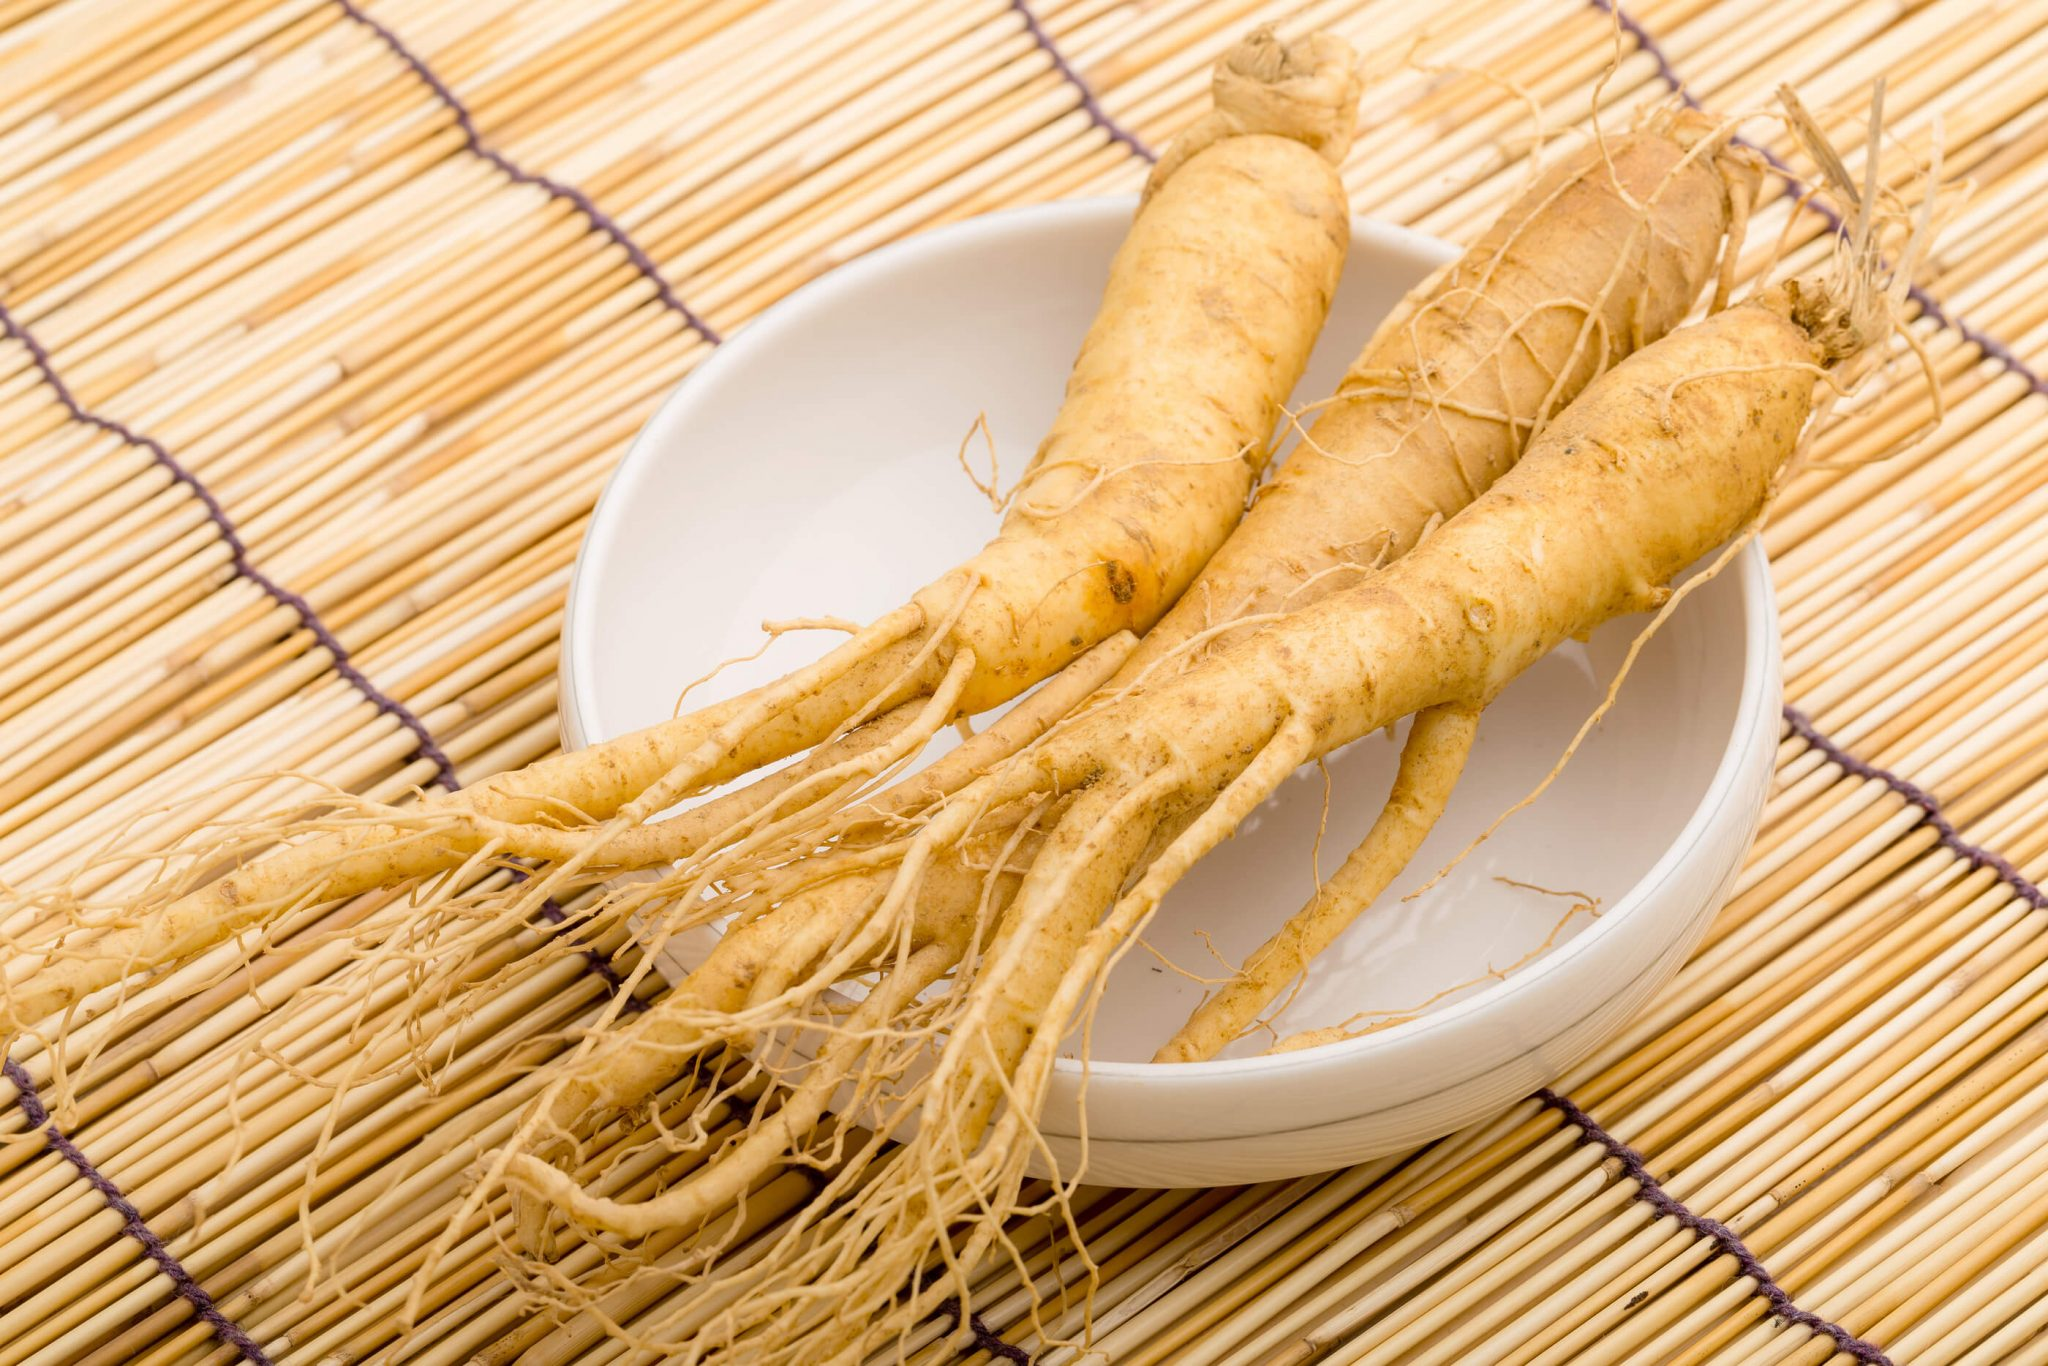 Ginseng Korean - What are Adaptogens? Do They Help to Reduce Stress?